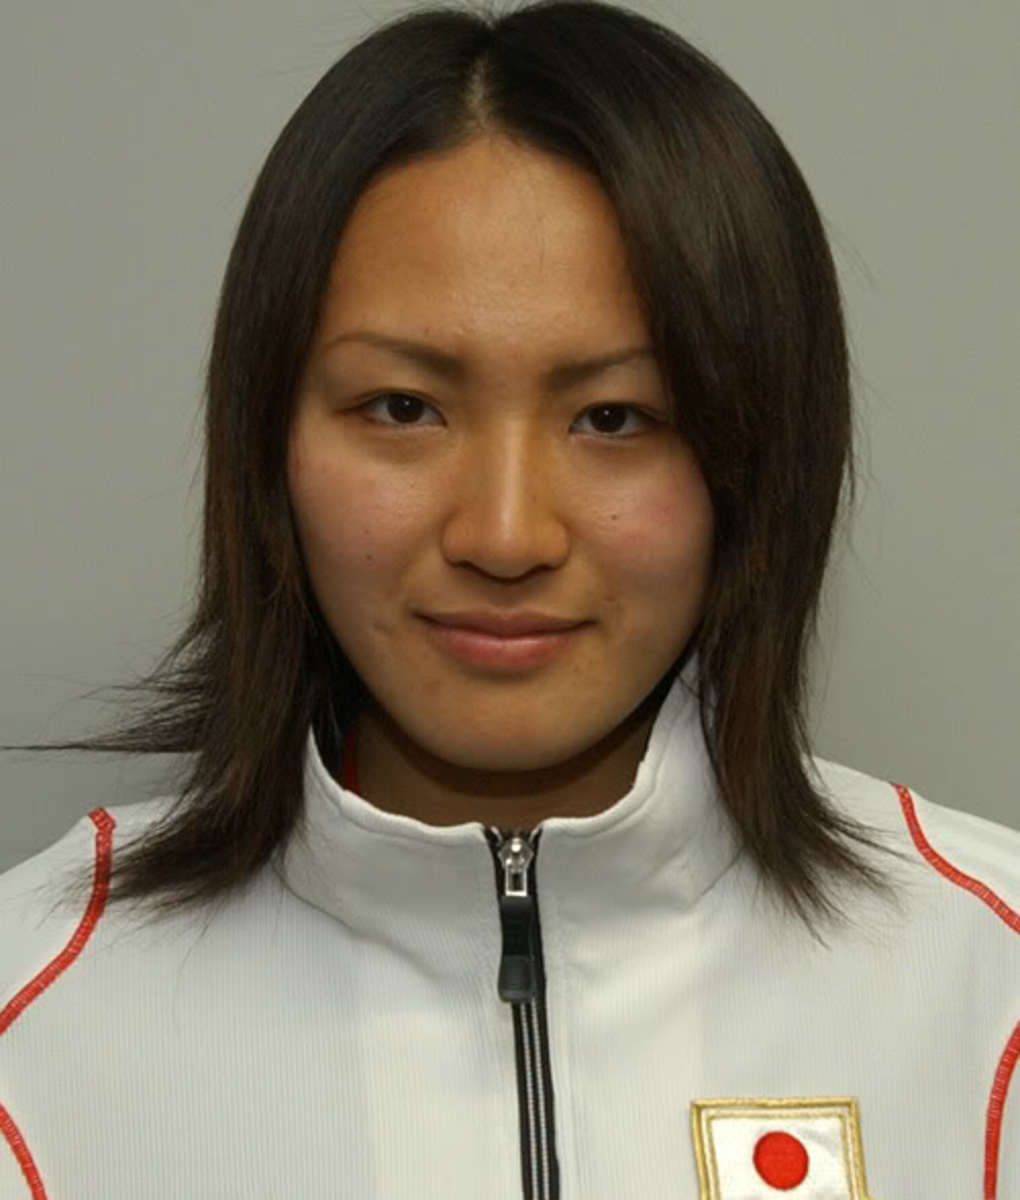 karina-maruyama-the-talented-soccer-forward-that-will-forever-be-remembered-for-a-special-goal